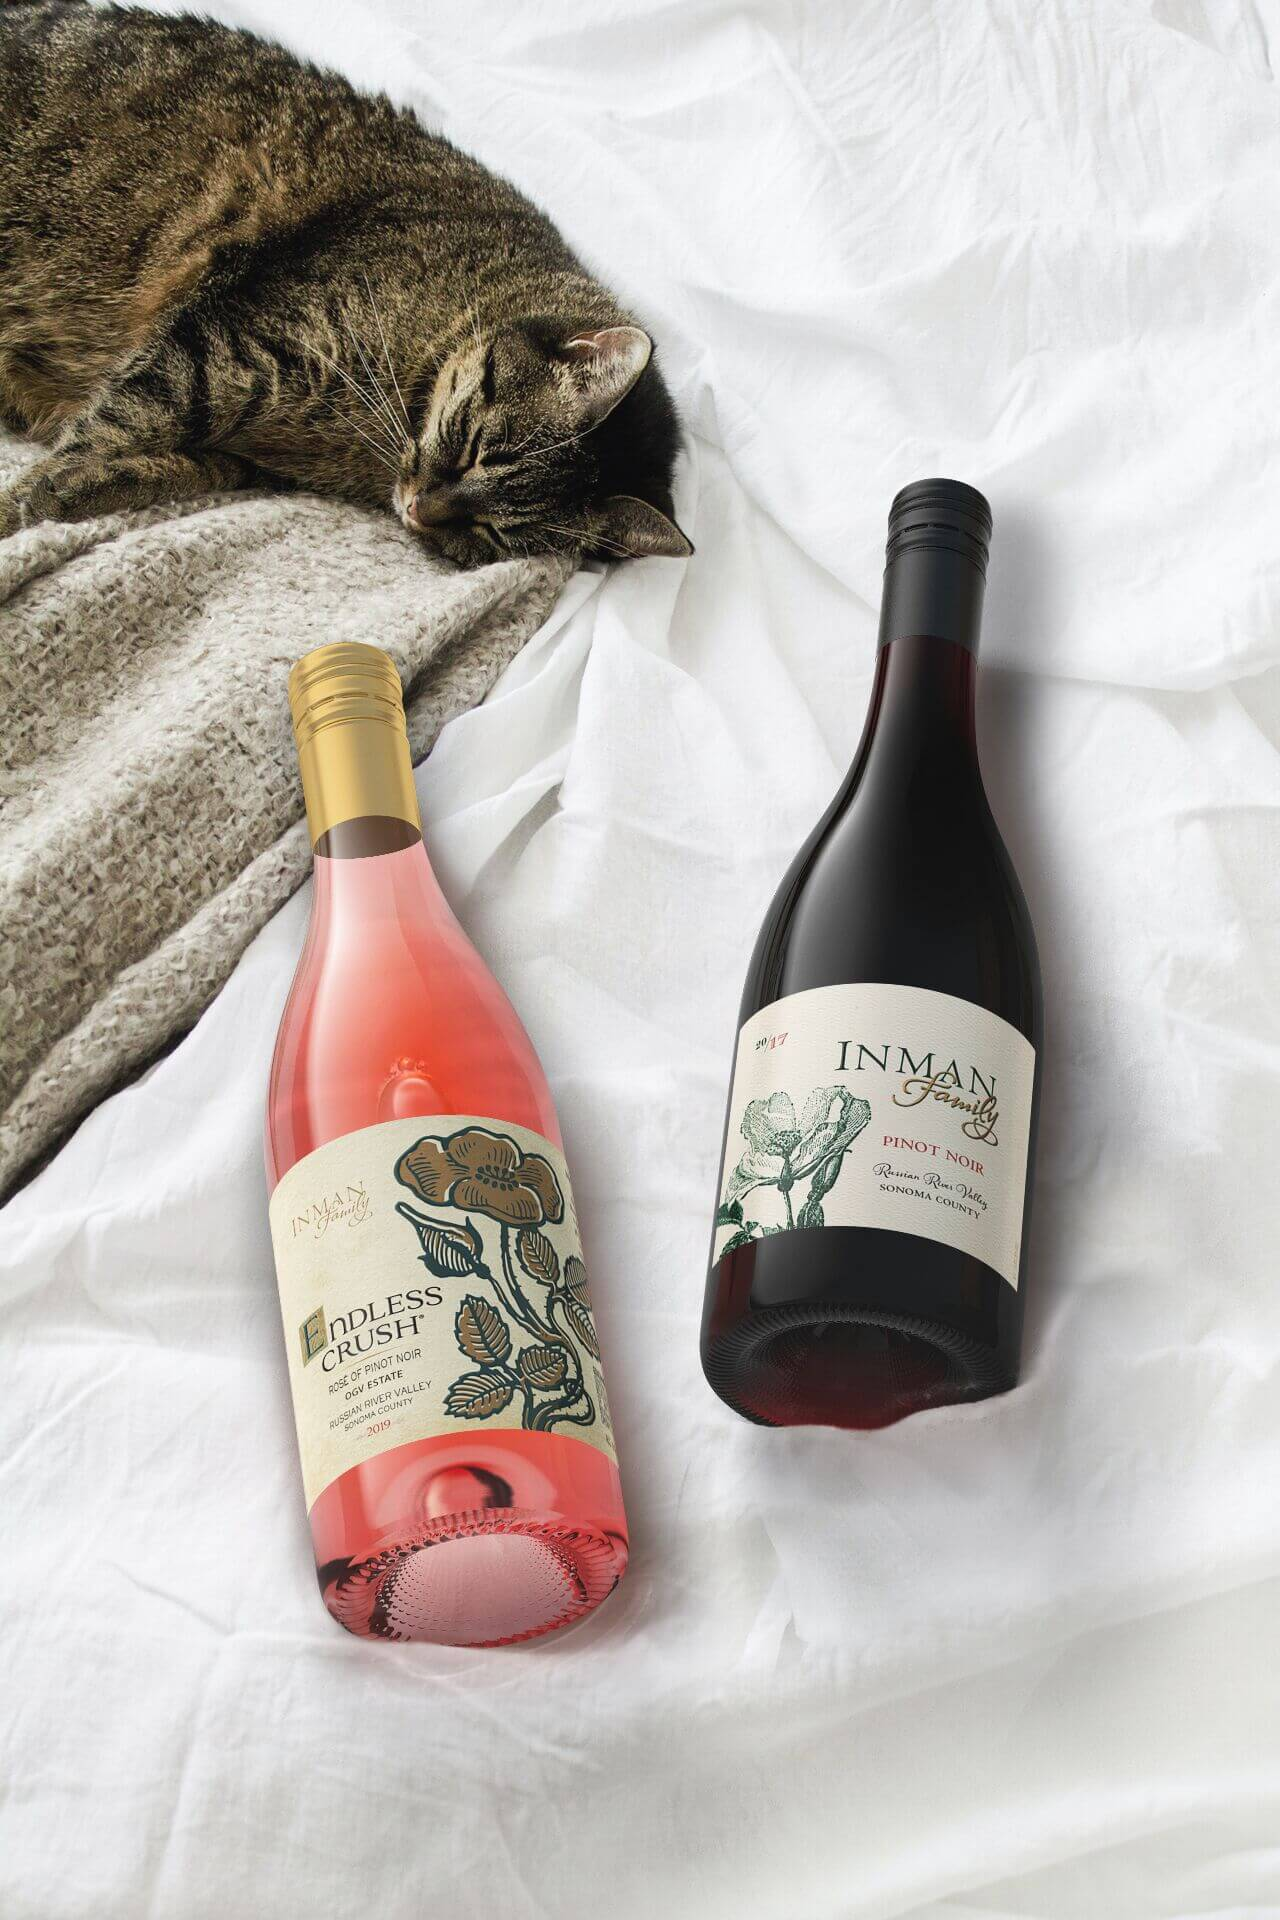 Why You Should Add Sonoma County's Inman Family Wines to Your Bucket List